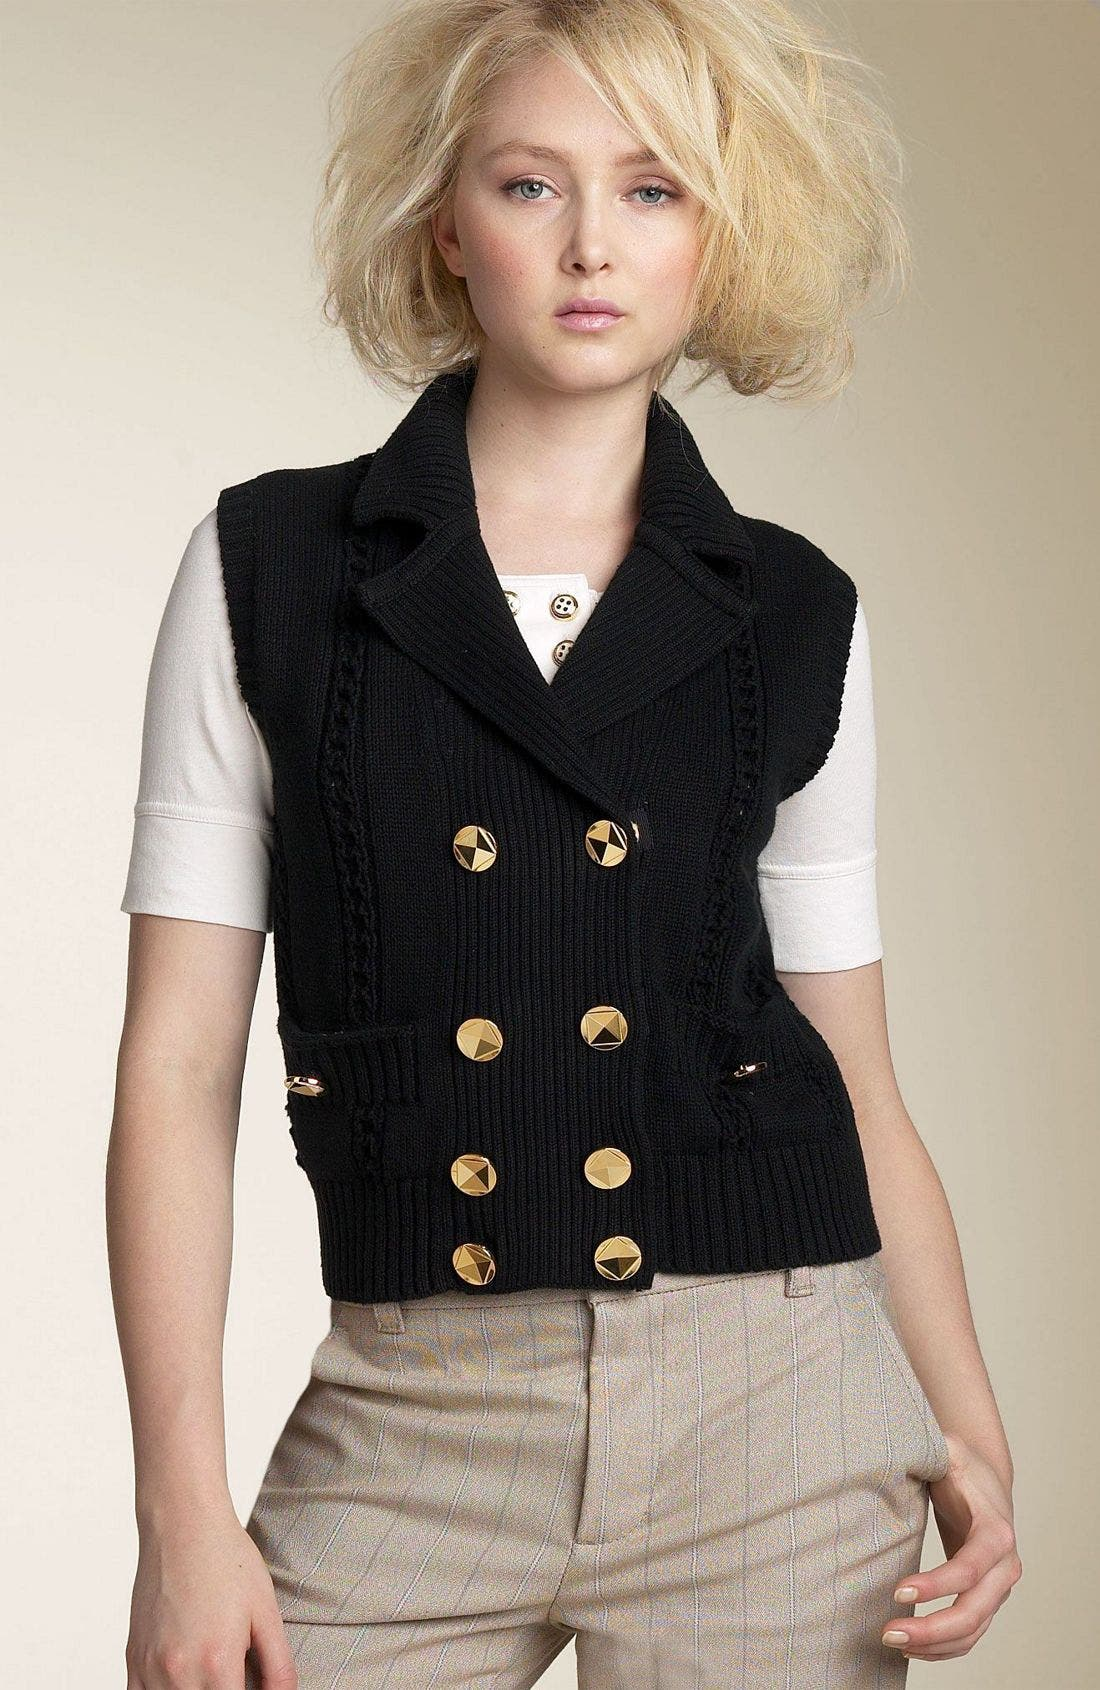 Main Image - MARC BY MARC JACOBS 'Gladys' Sweater Vest